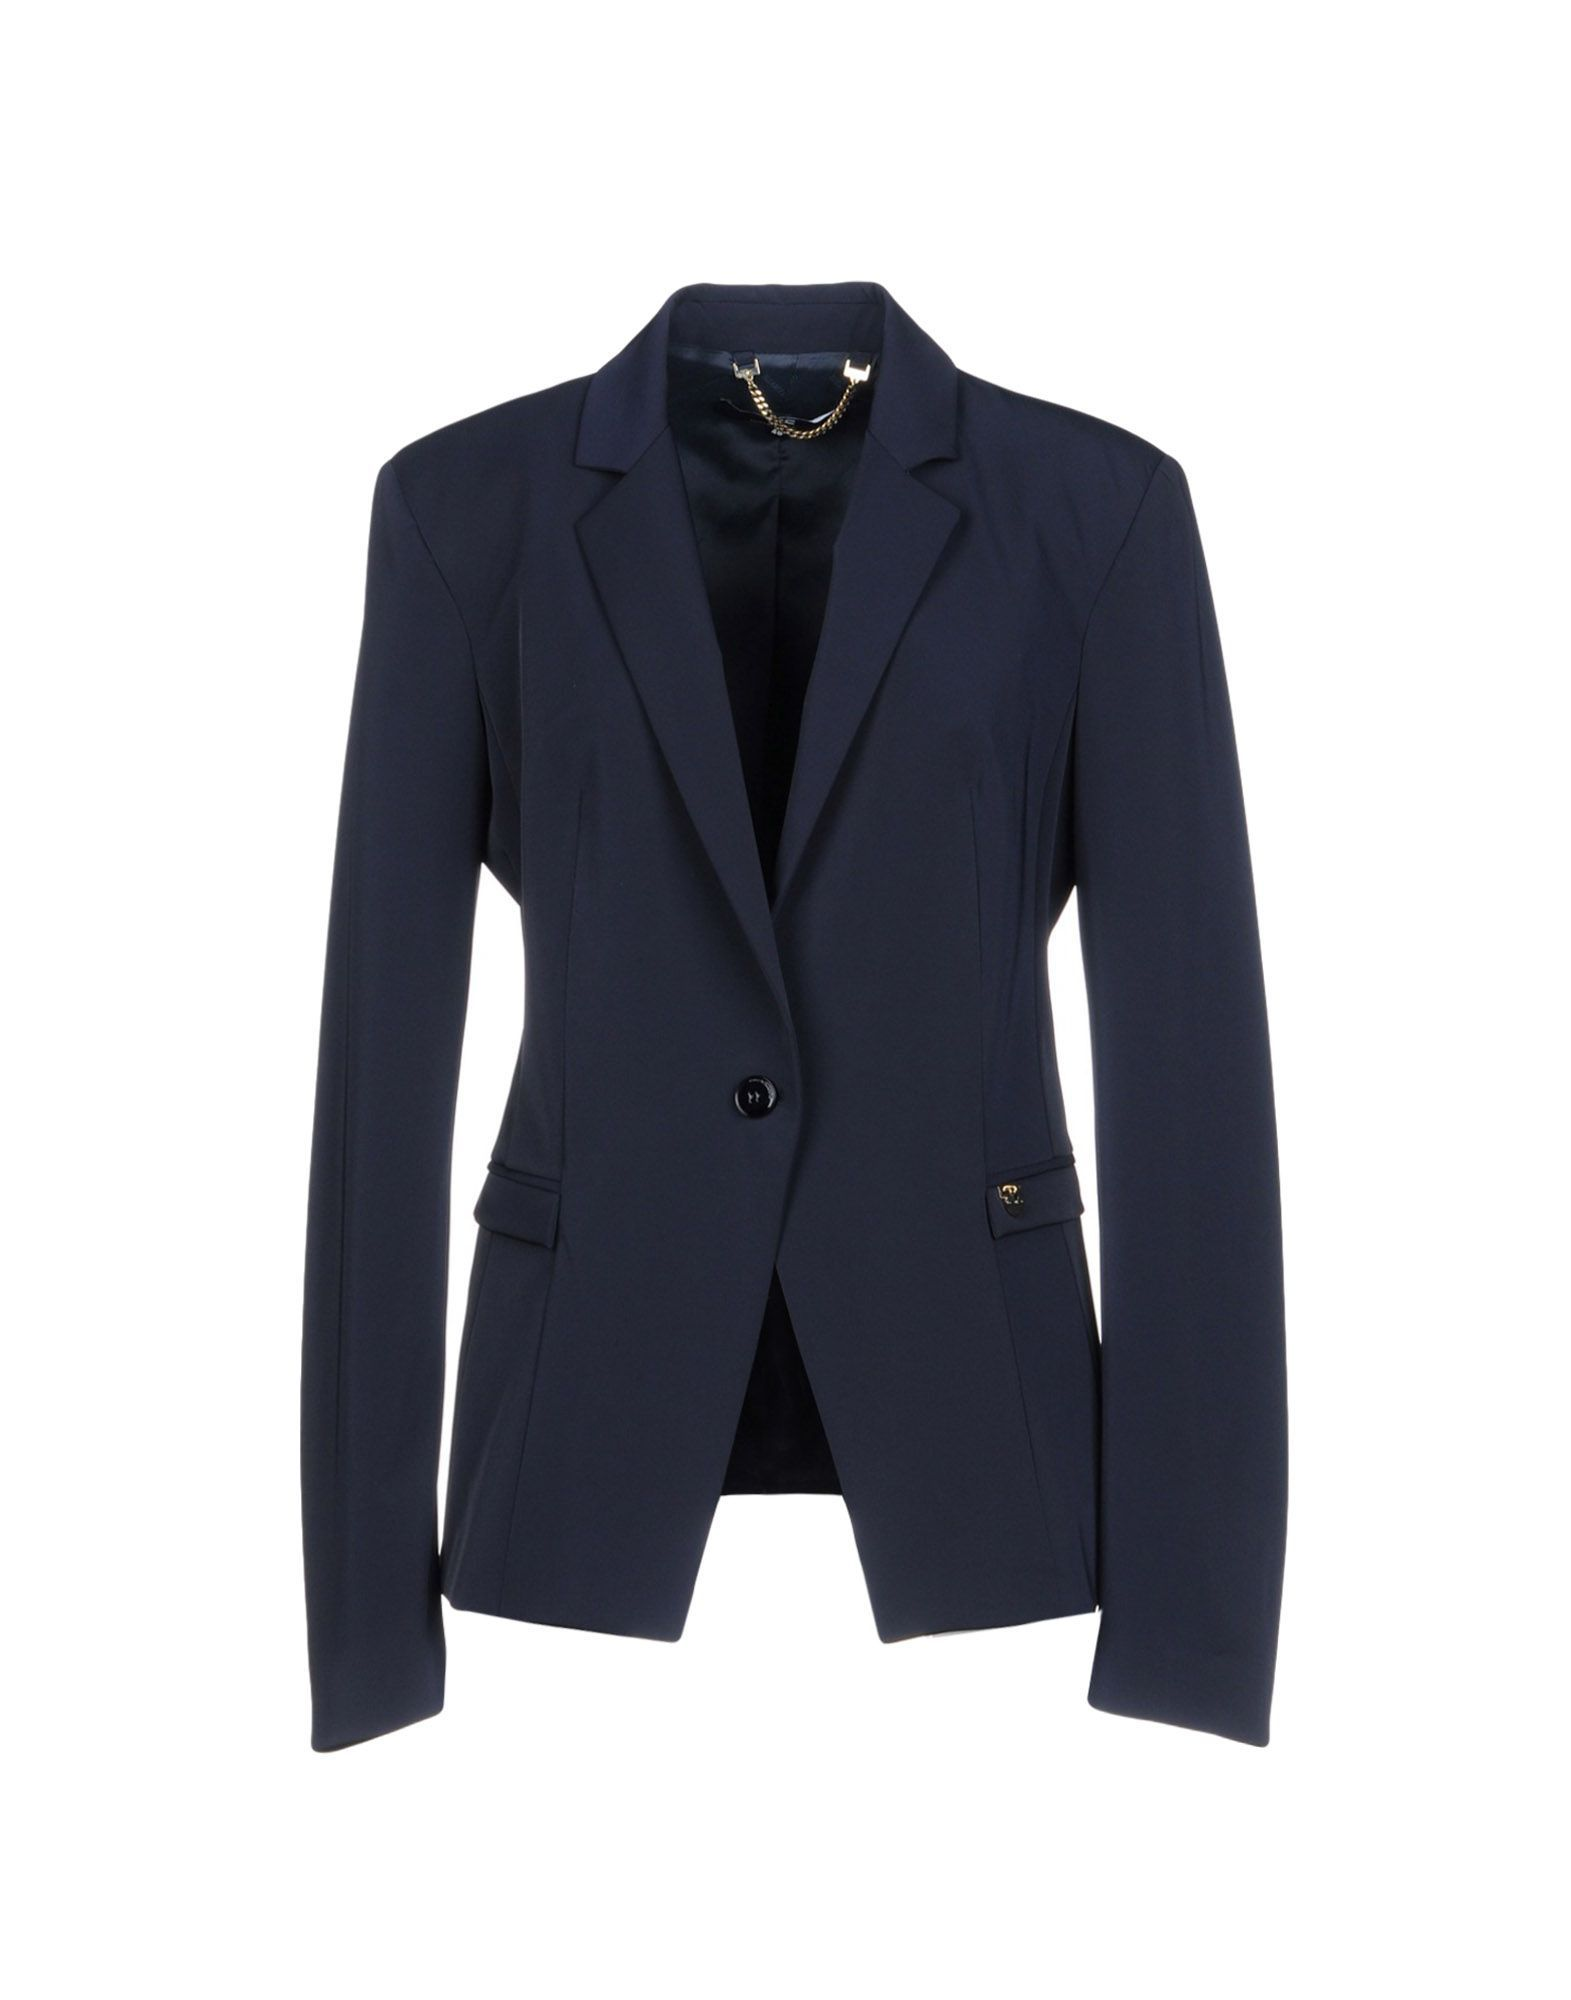 Elisabetta Franchi 24 Ore Dark Blue Single Breasted Blazer